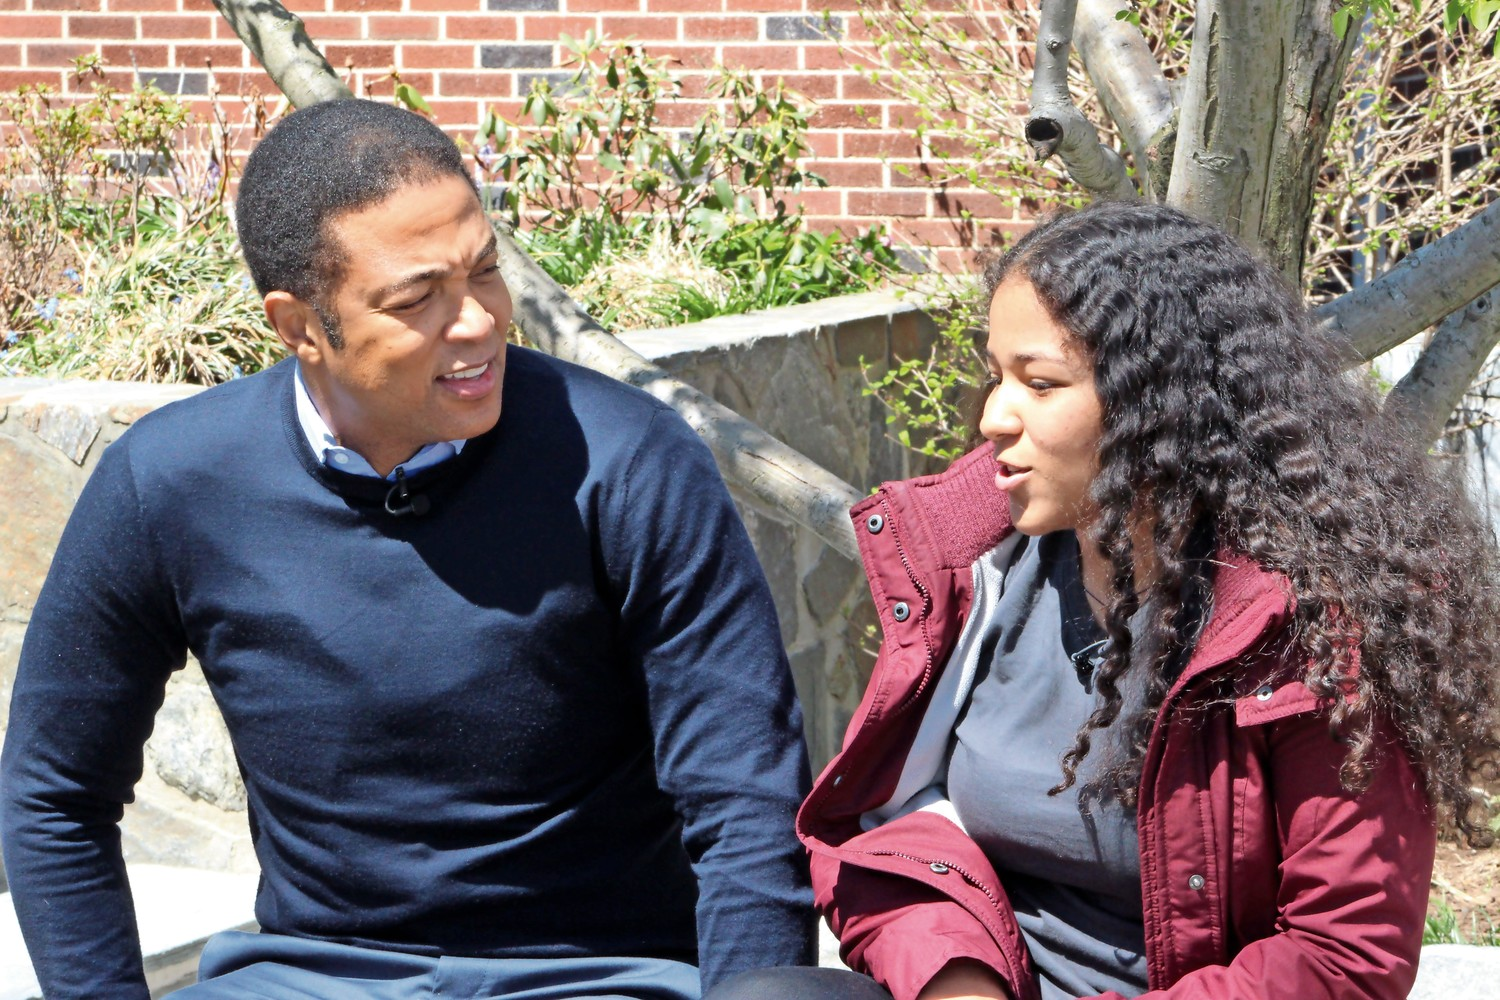 CNN anchor Don Lemon speaks with a student at Riverdale Country High School. Lemon traveled to the school to meet with students who are Oliver Scholars, which is part of a program that prepares minority students to attend elite universities.